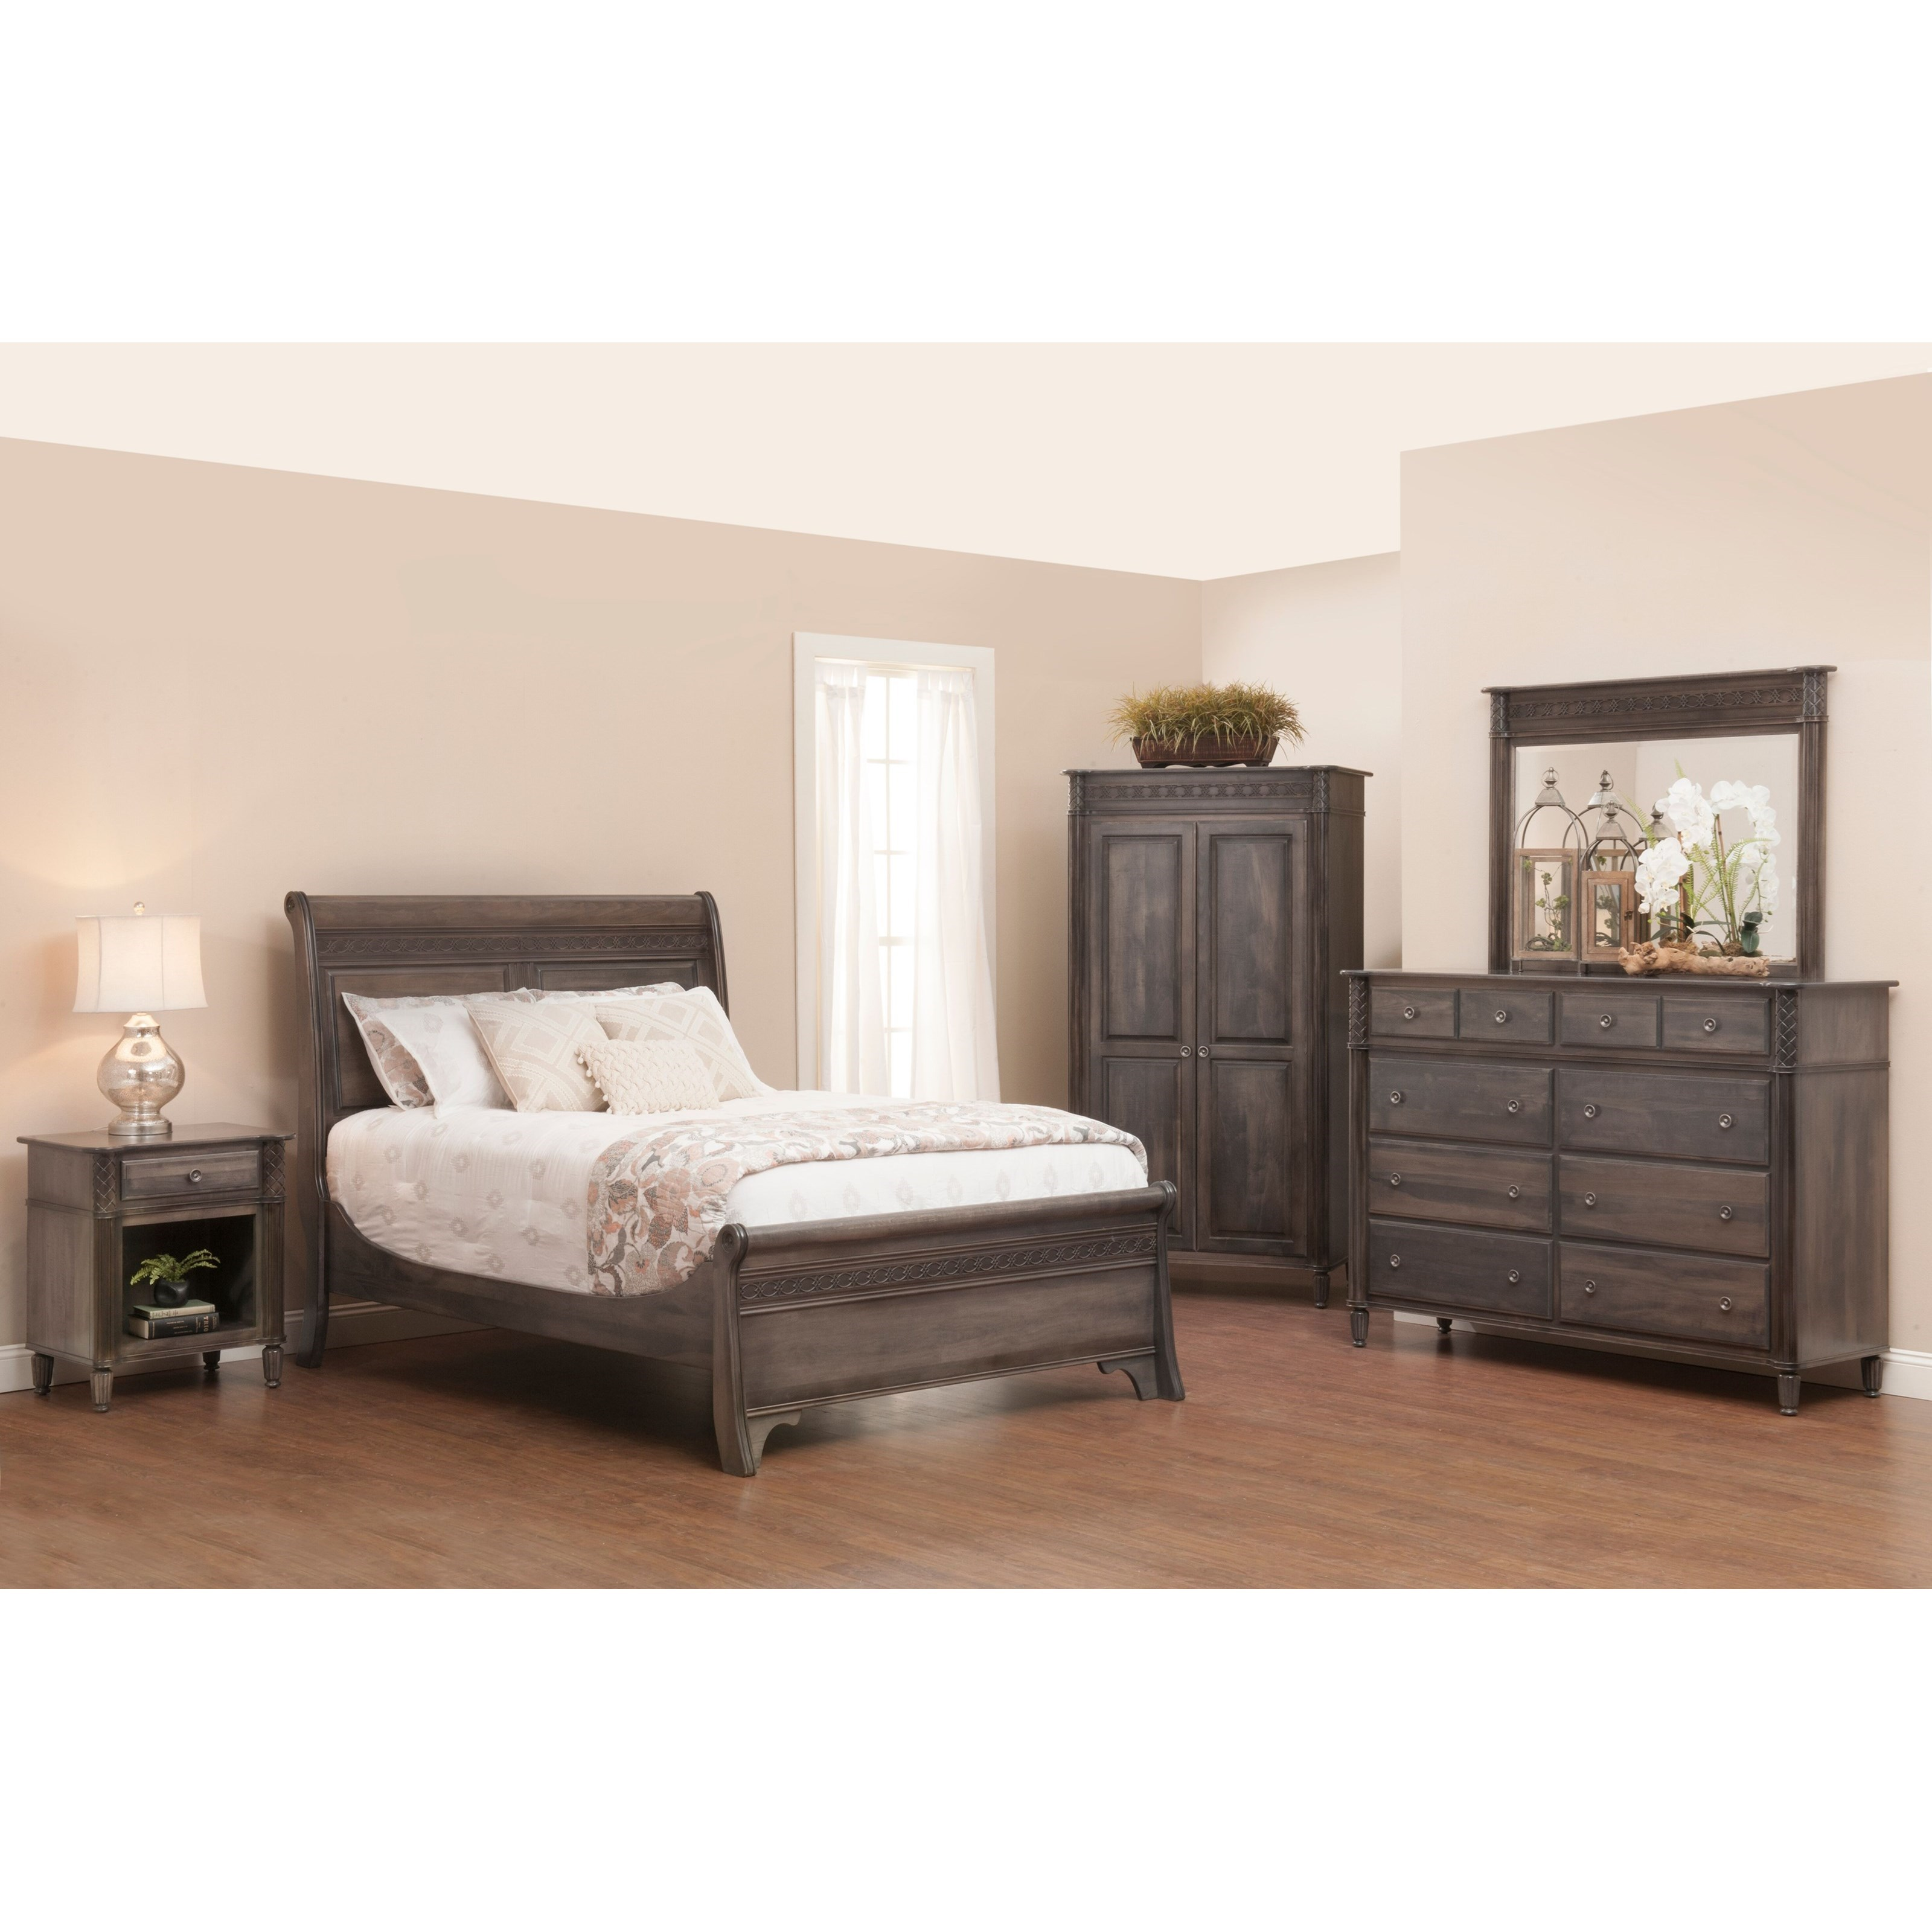 Eminence Queen Bedroom Group by Millcraft at Saugerties Furniture Mart